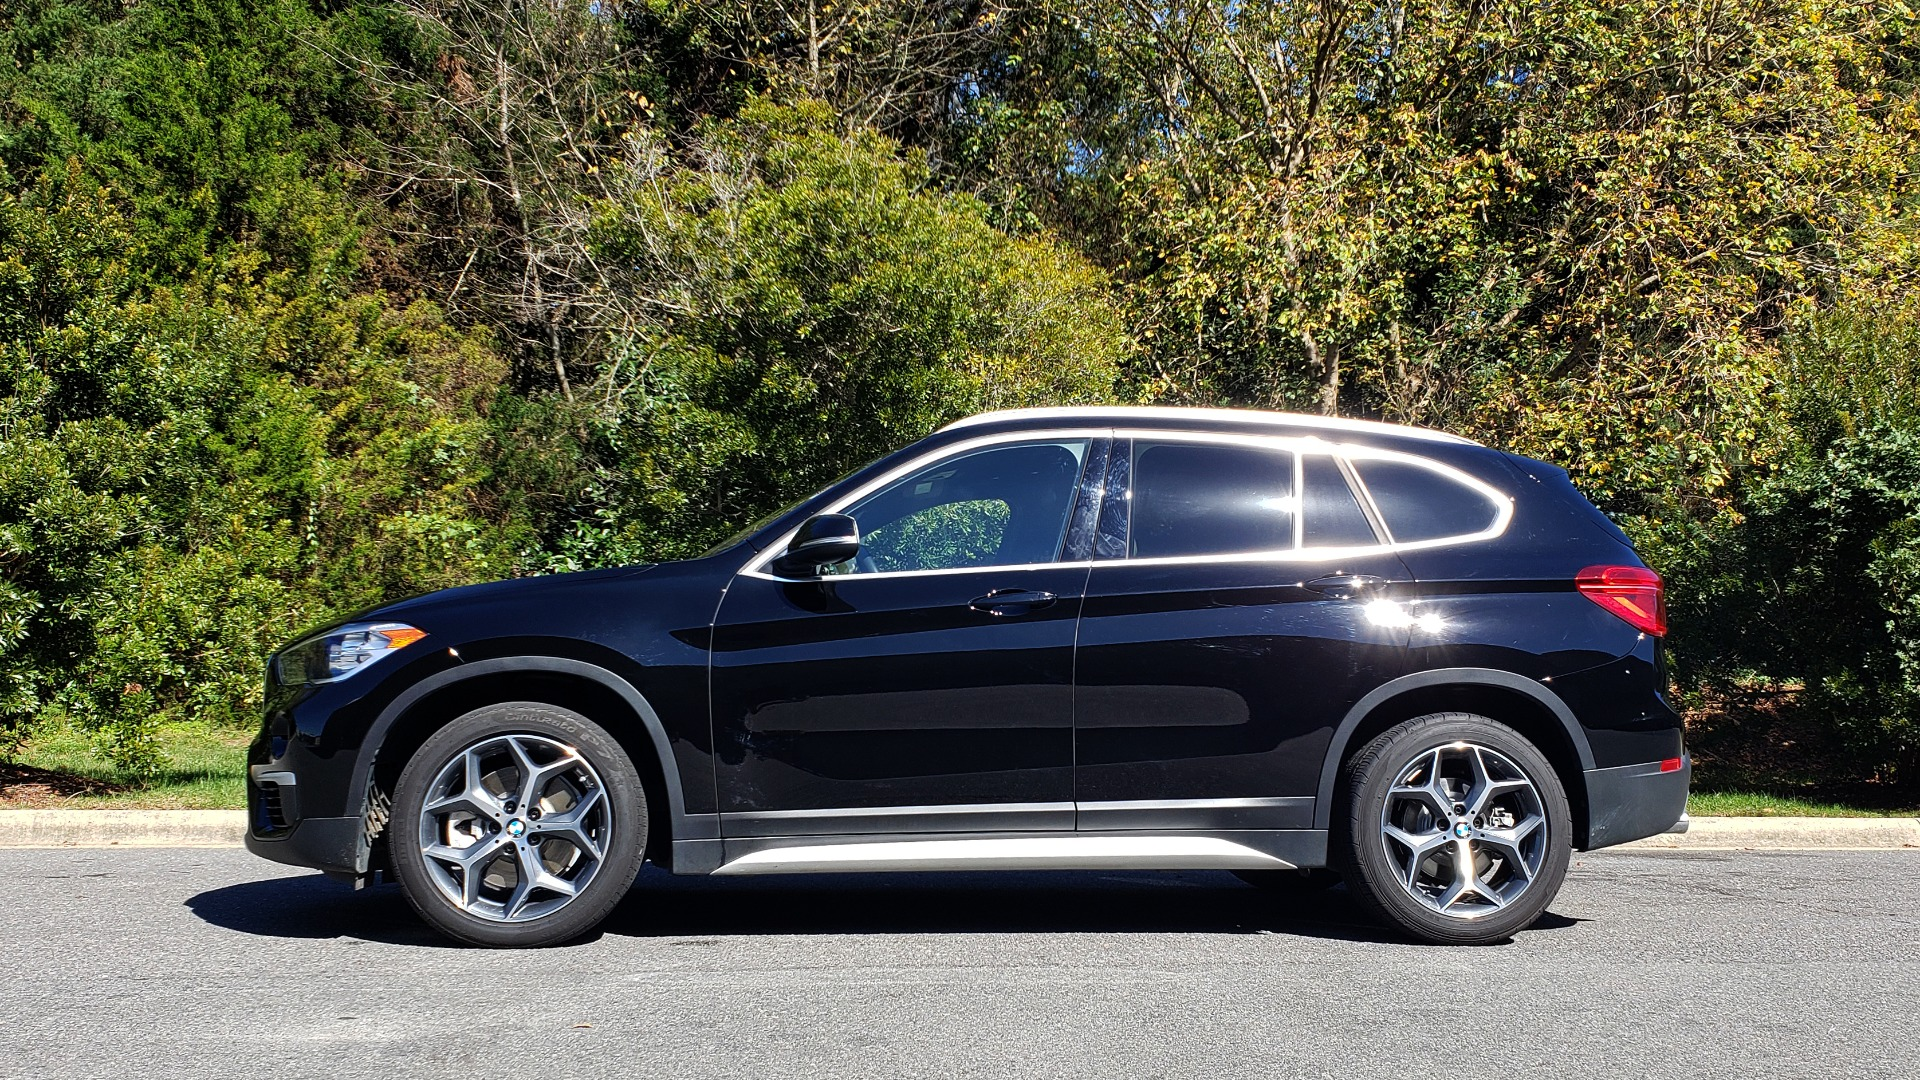 Used 2018 BMW X1 SDRIVE28I / HEATED SEATS / 4-CYL / 8-SPD AUTO / REARVIEW for sale Sold at Formula Imports in Charlotte NC 28227 7